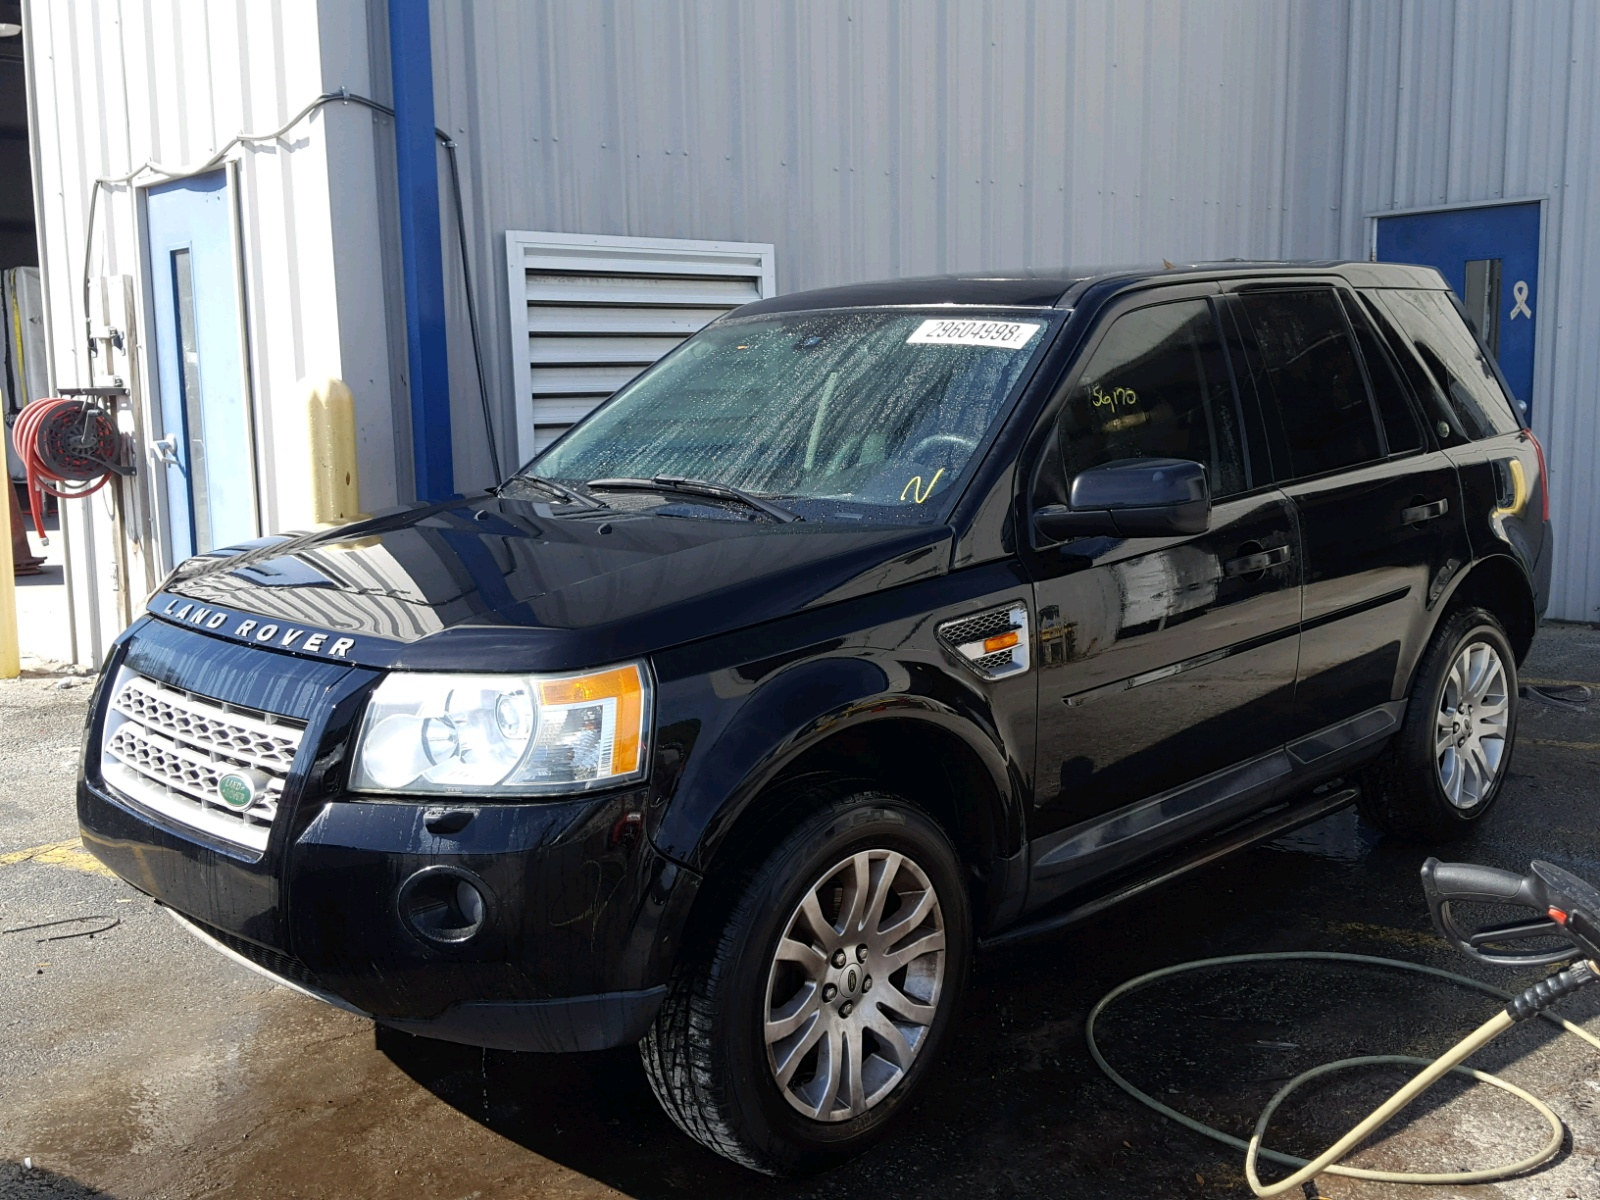 auto copart se on sale online certificate of left auction palm view title west beach land ended lot auctions landrover fl vin carfinder en for rover